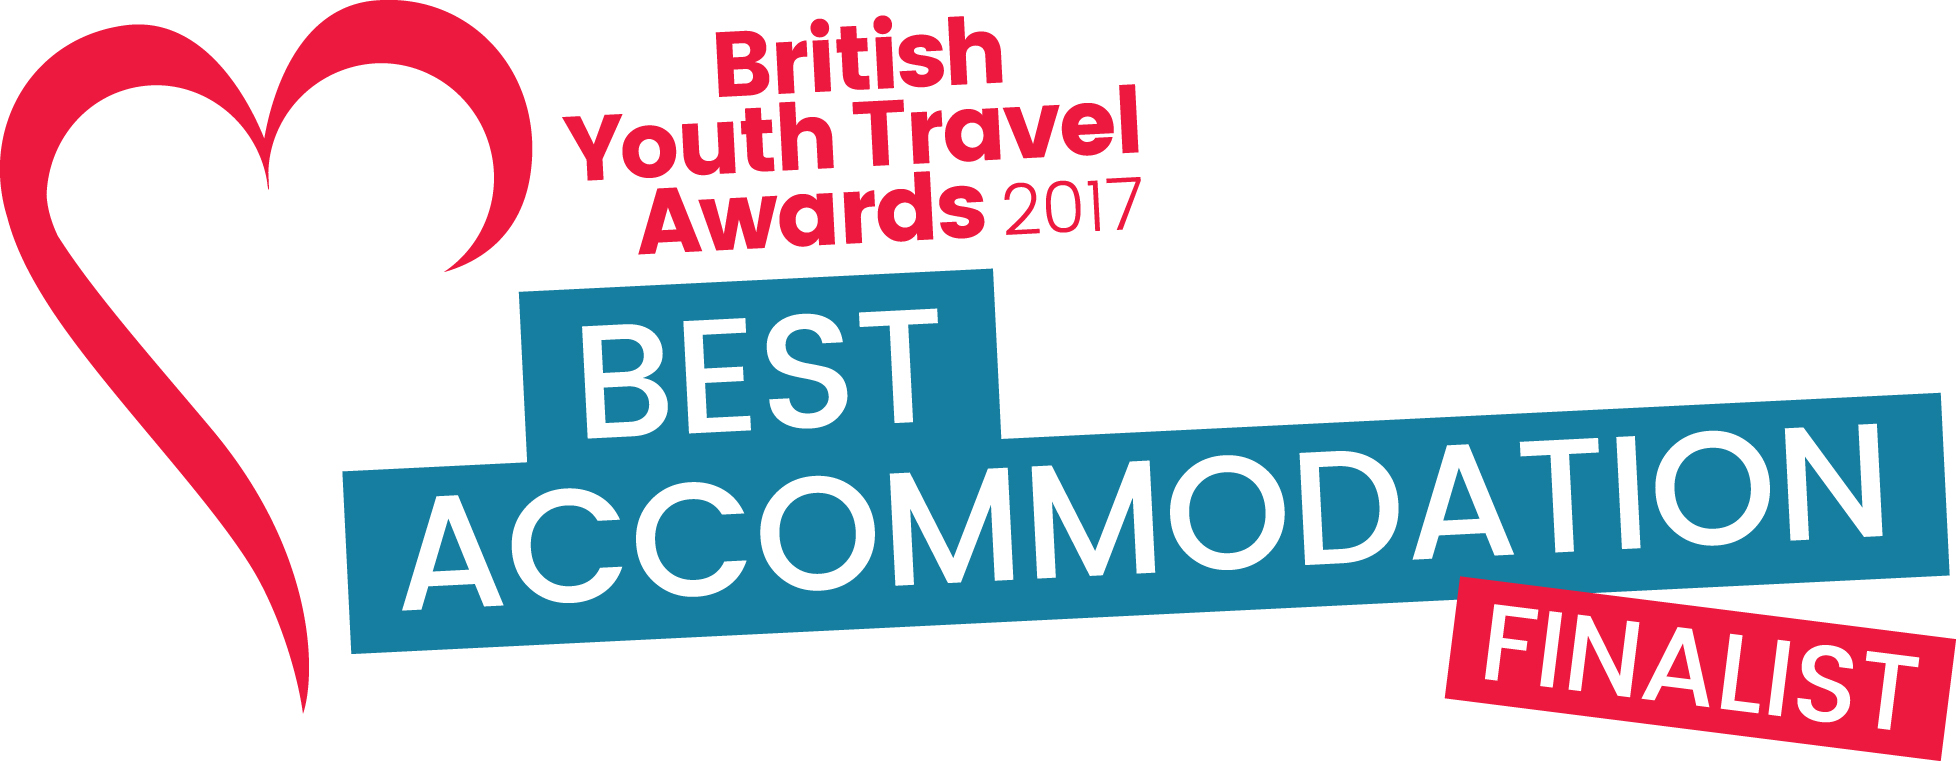 https://www.britishyouthtravelawards.com/